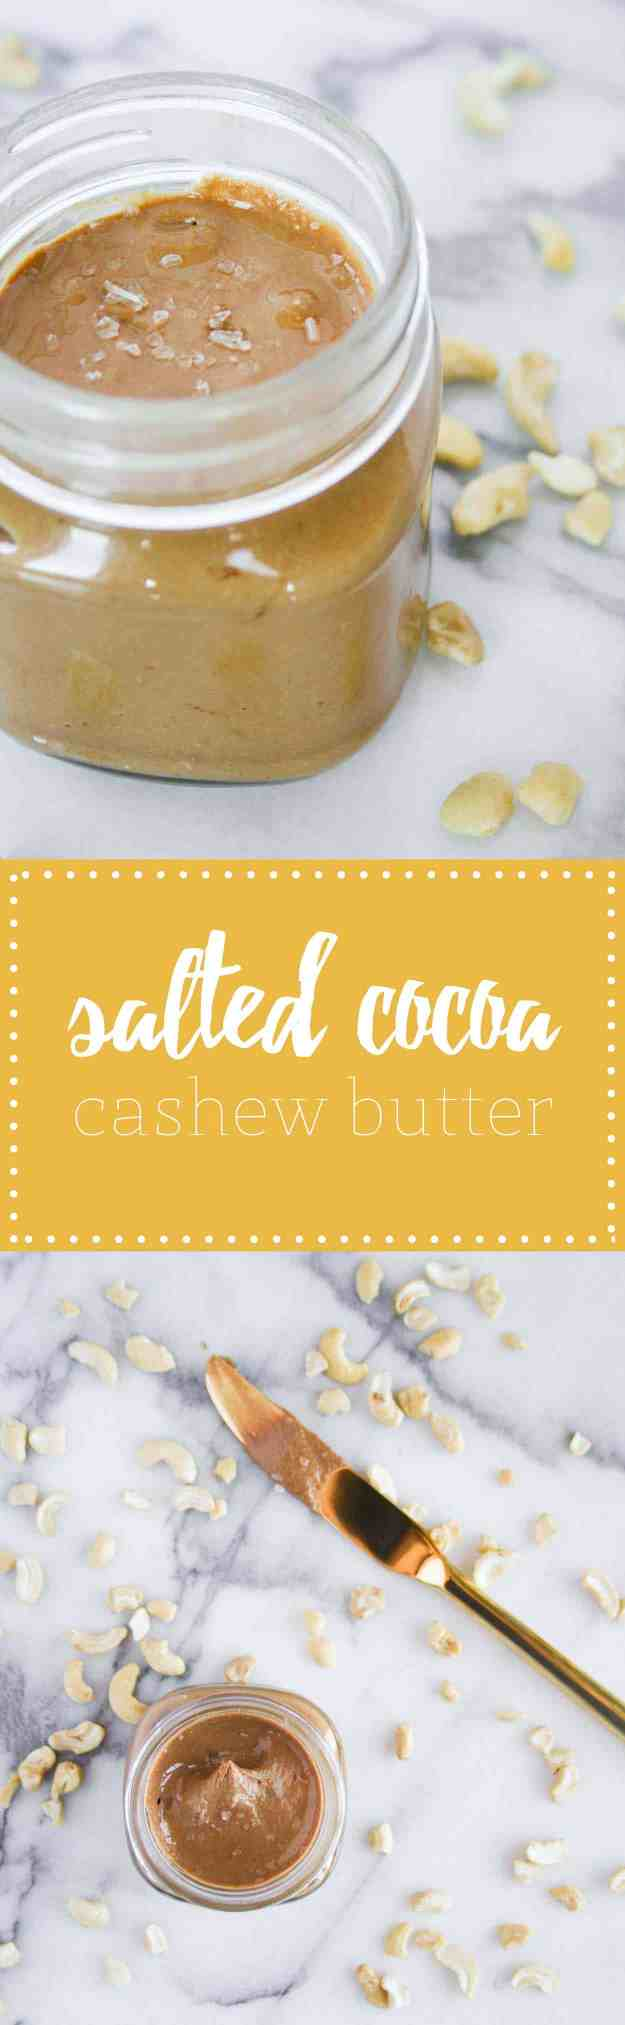 Simple Salted Cocoa Cashew Butter | Hungry by Nature